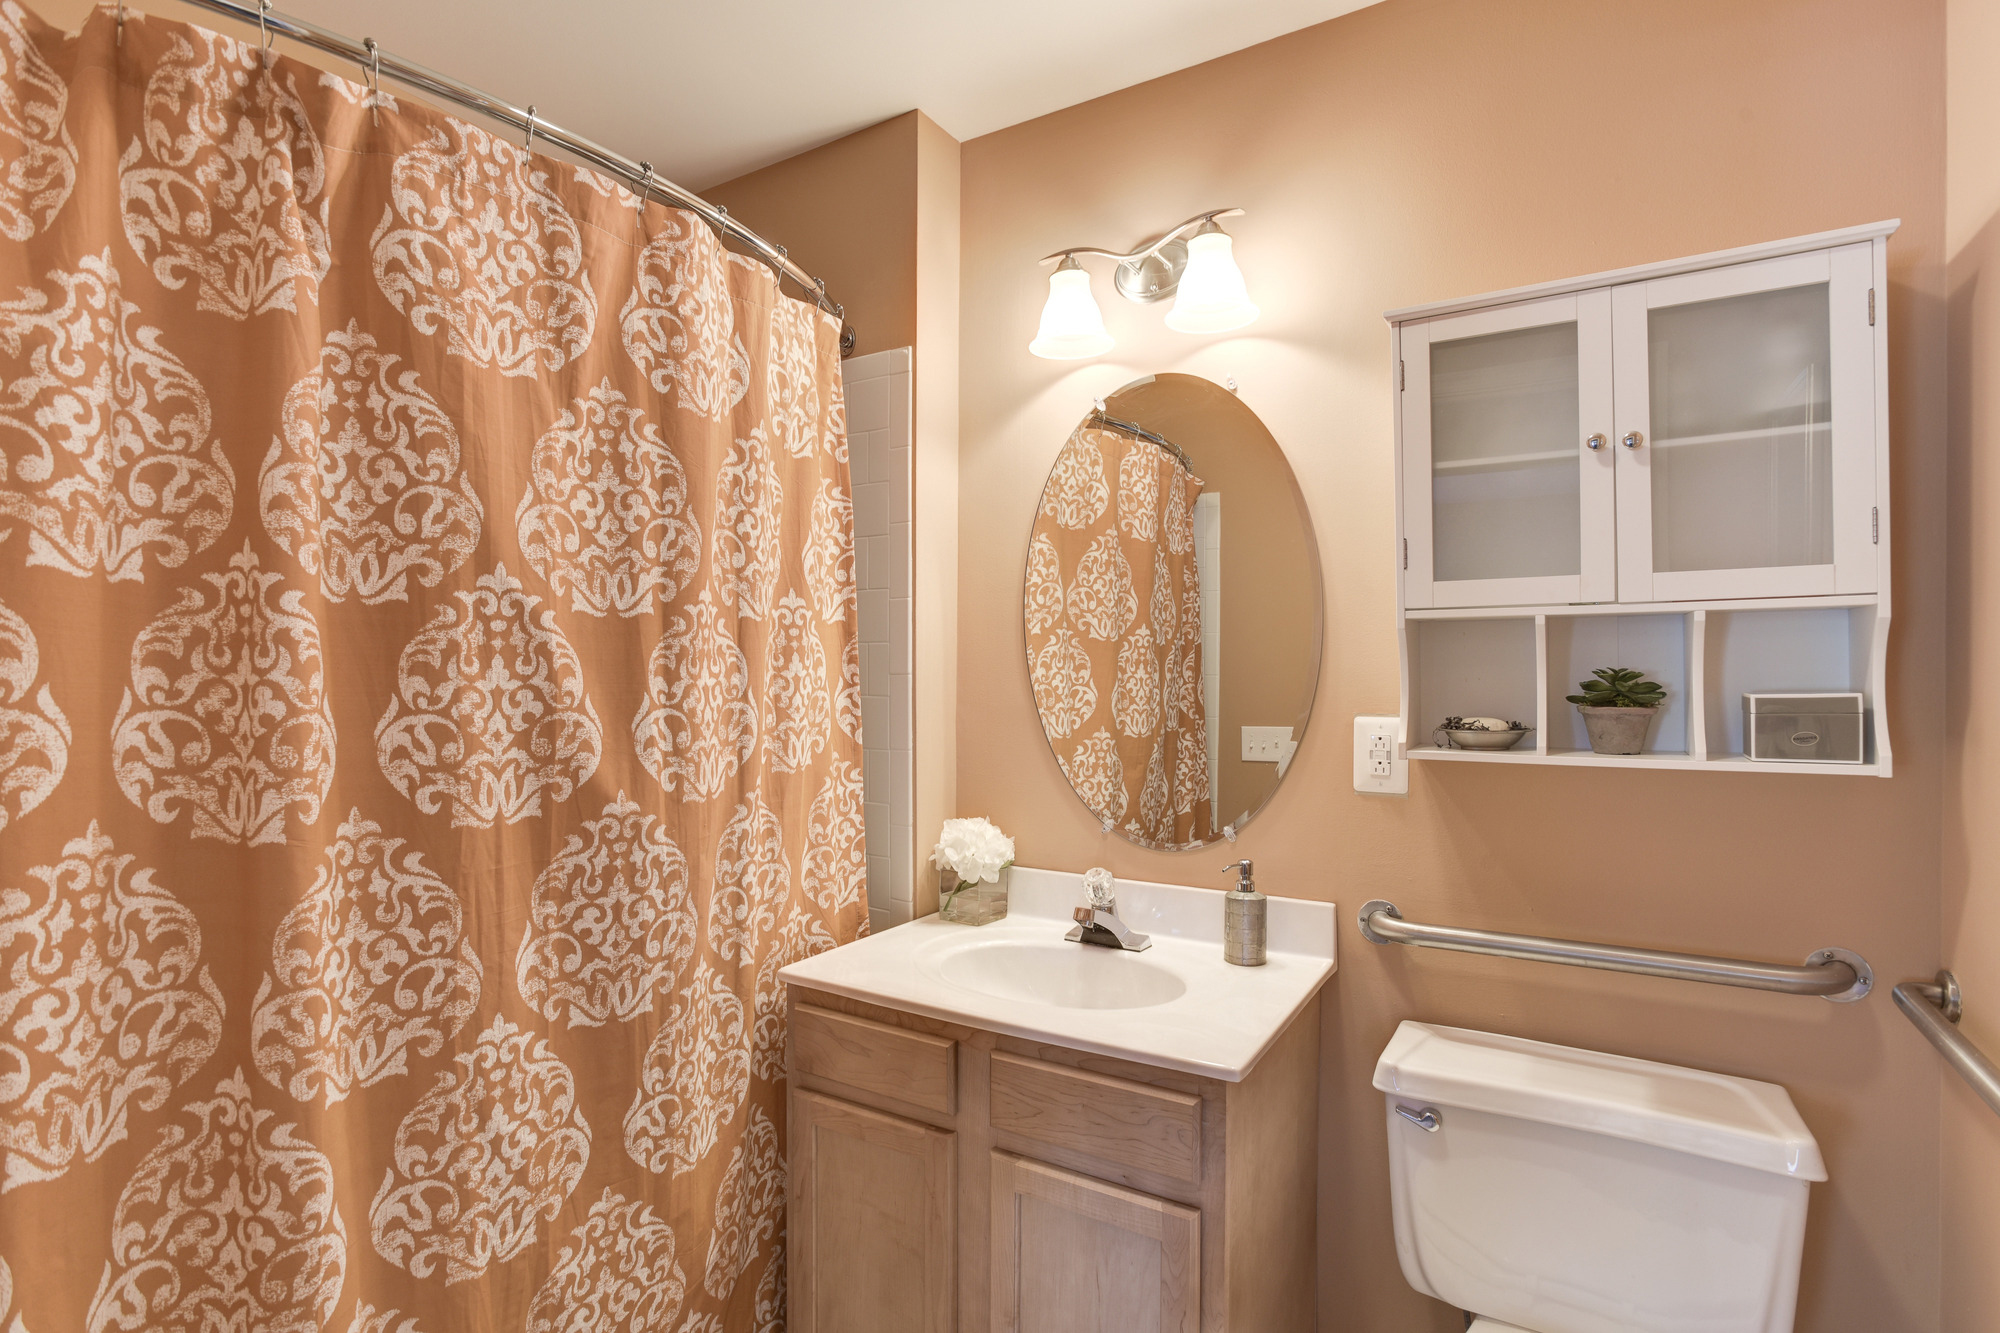 Fox Run Apartments in Edgewood, MD 21040: Updated Bathrooms